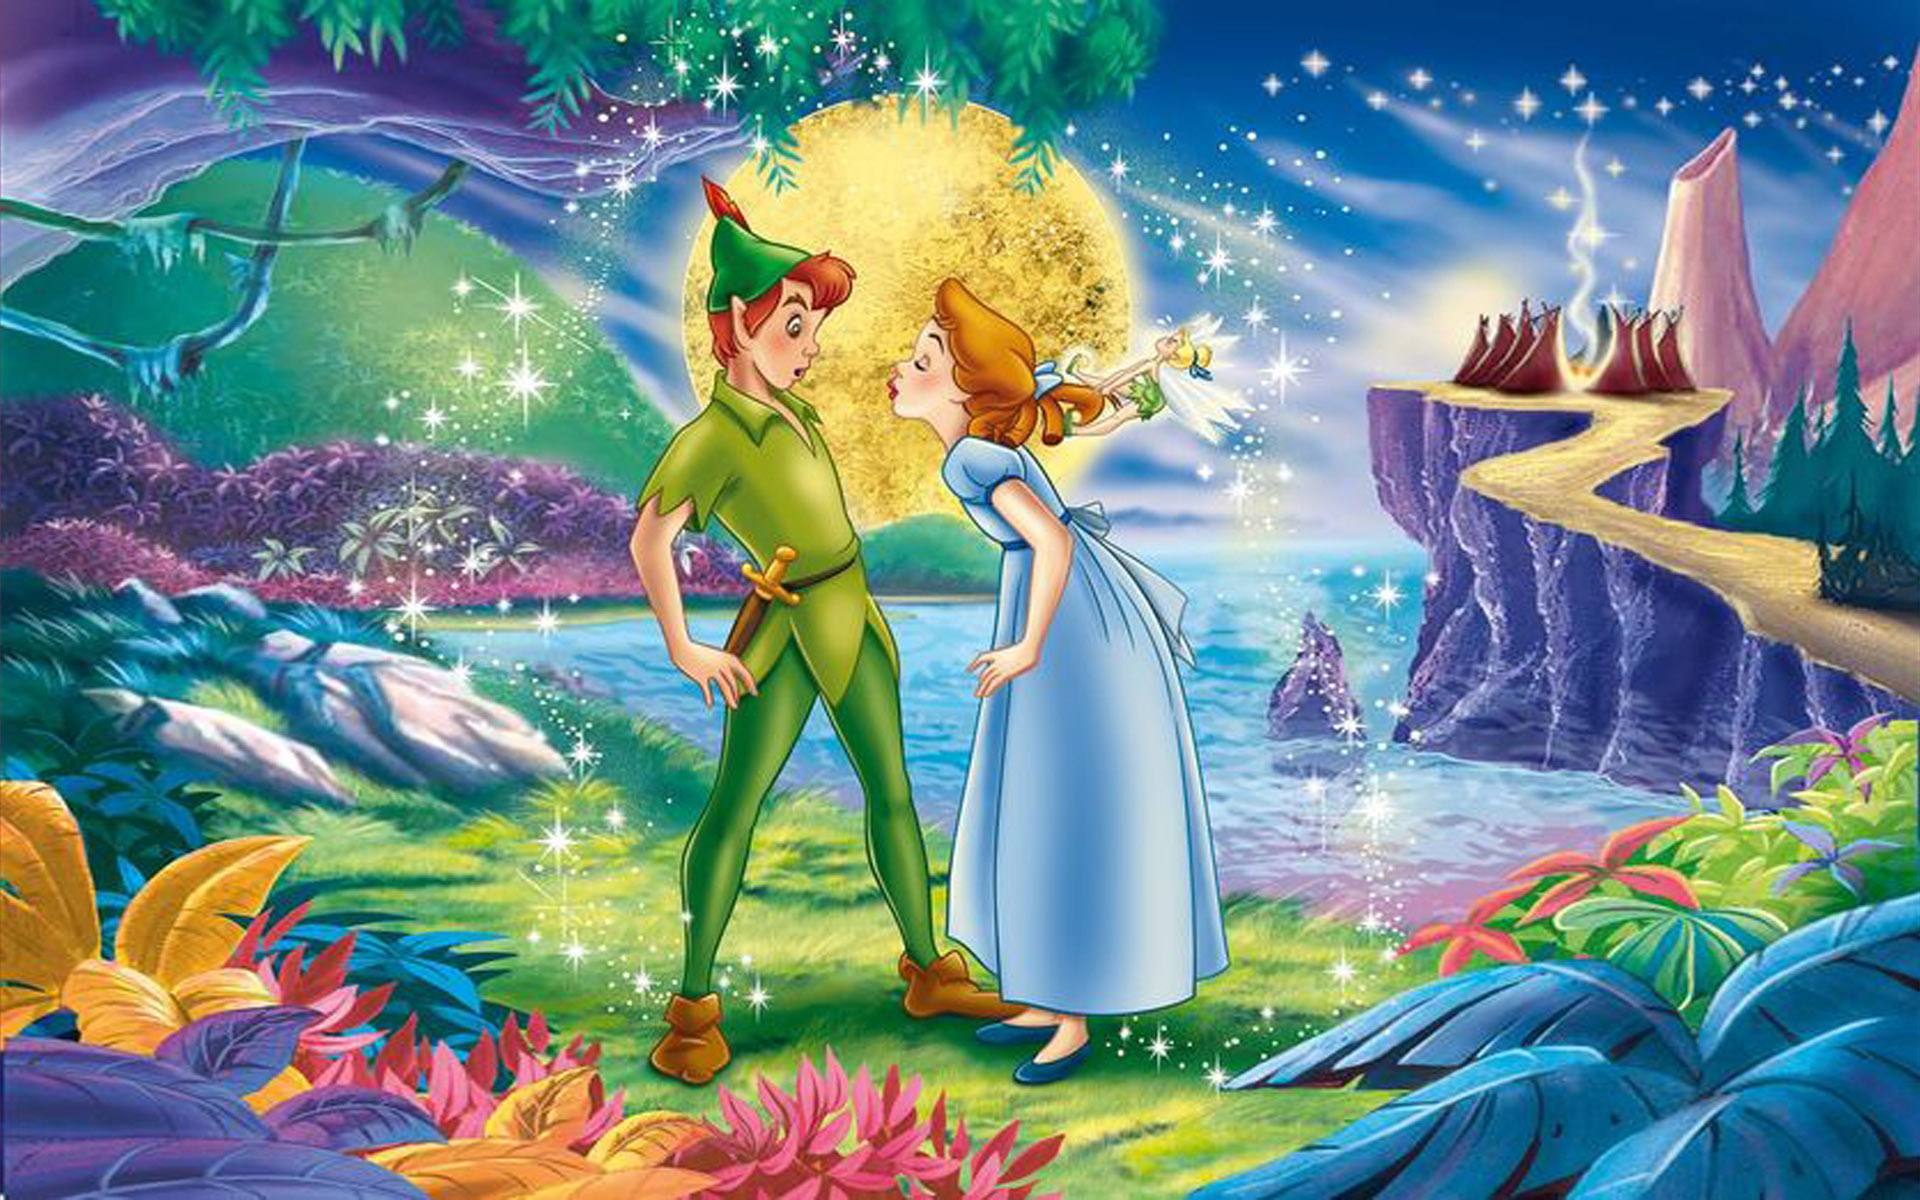 Read These 10 Beautiful Peter Pan Quotes To Relive An